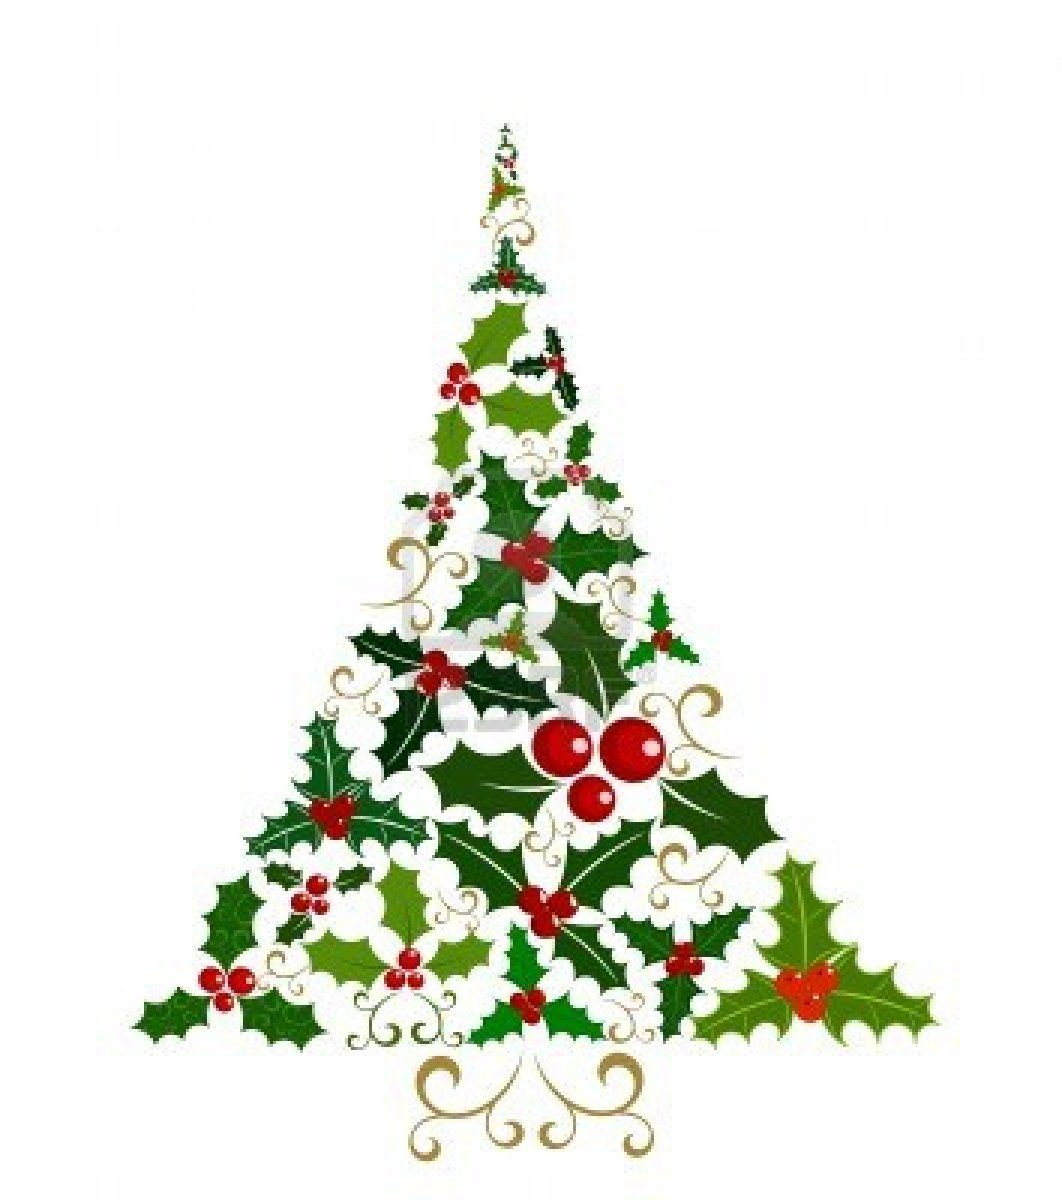 Abstract Christmas tree isolated made of various holly berry leaves and fruits